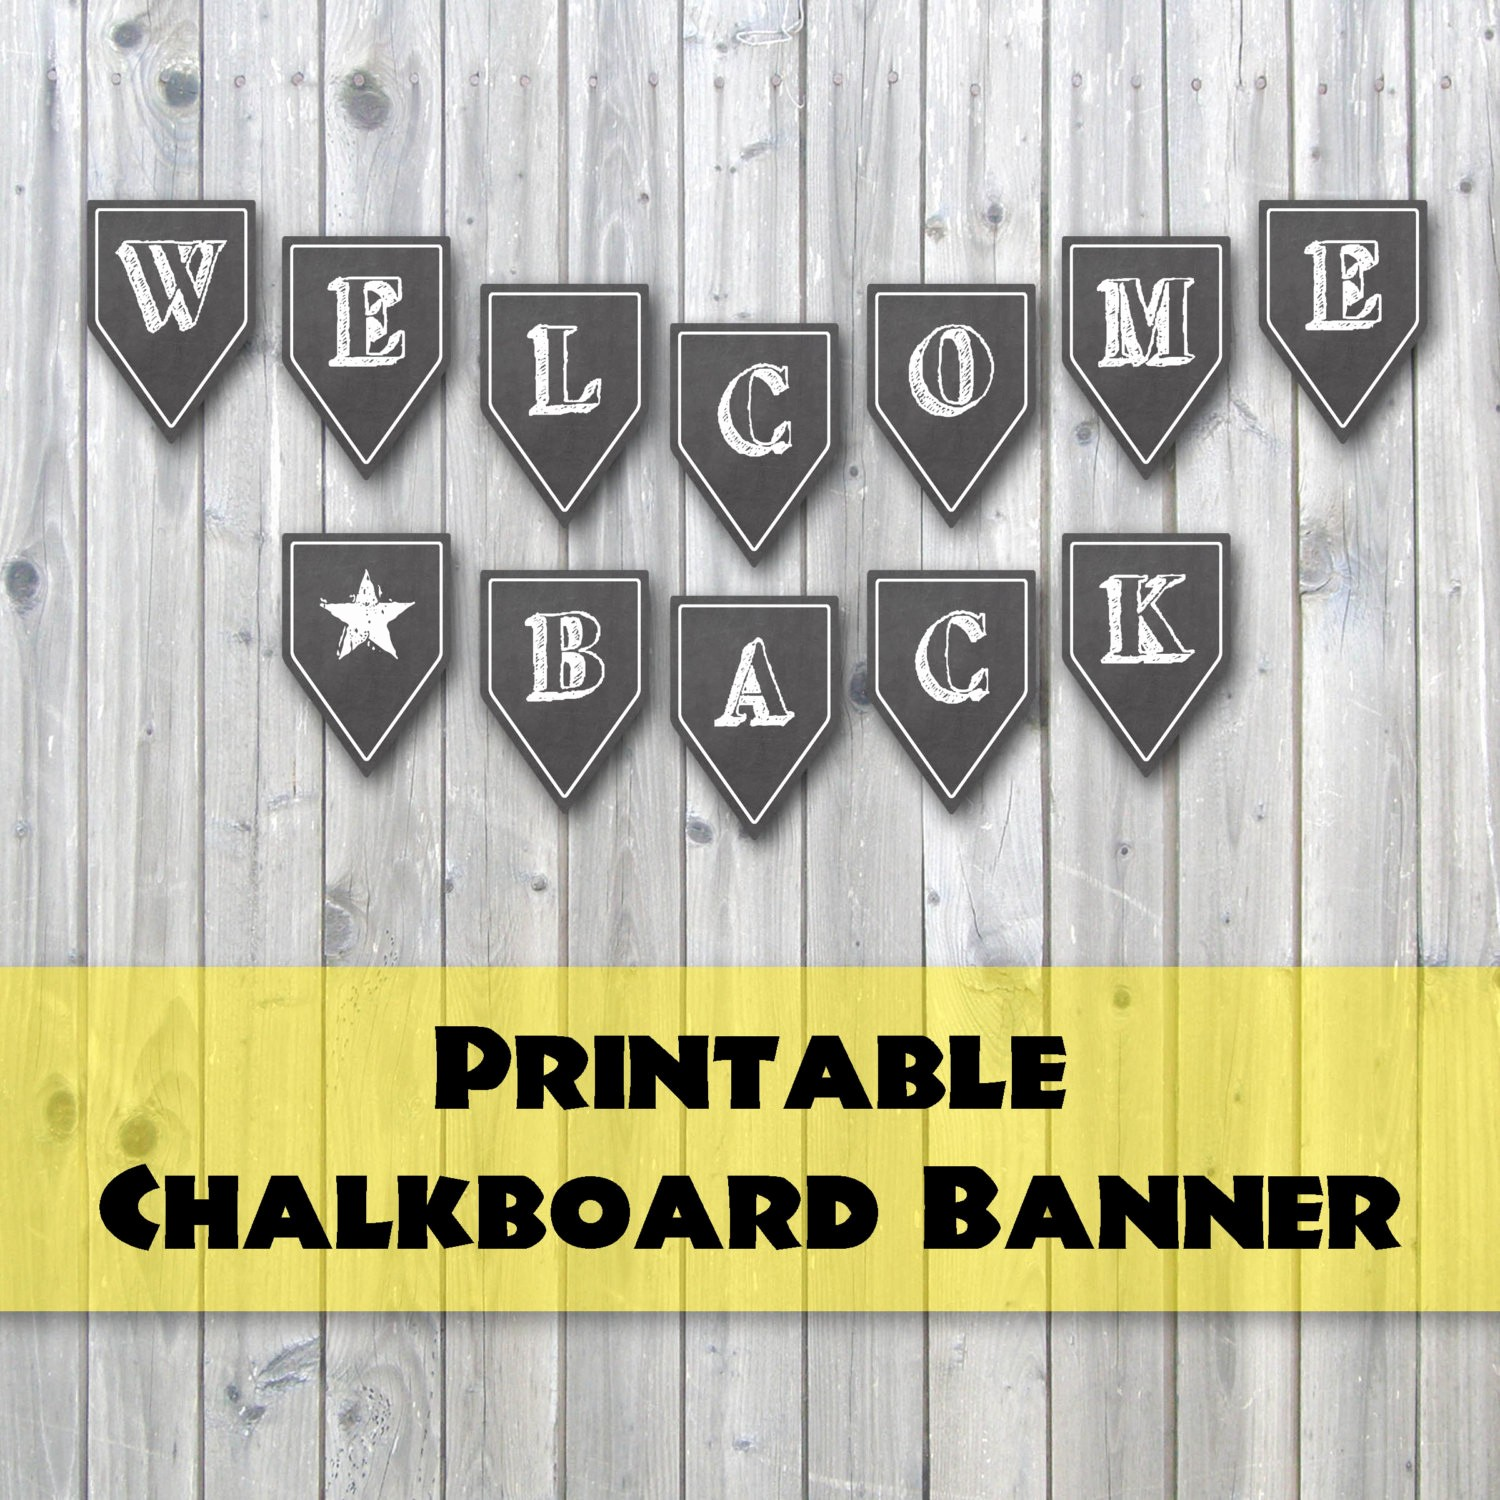 Welcome Back Sign to Print Luxury Wel E Back Chalkboard Design Printable Banner Back to